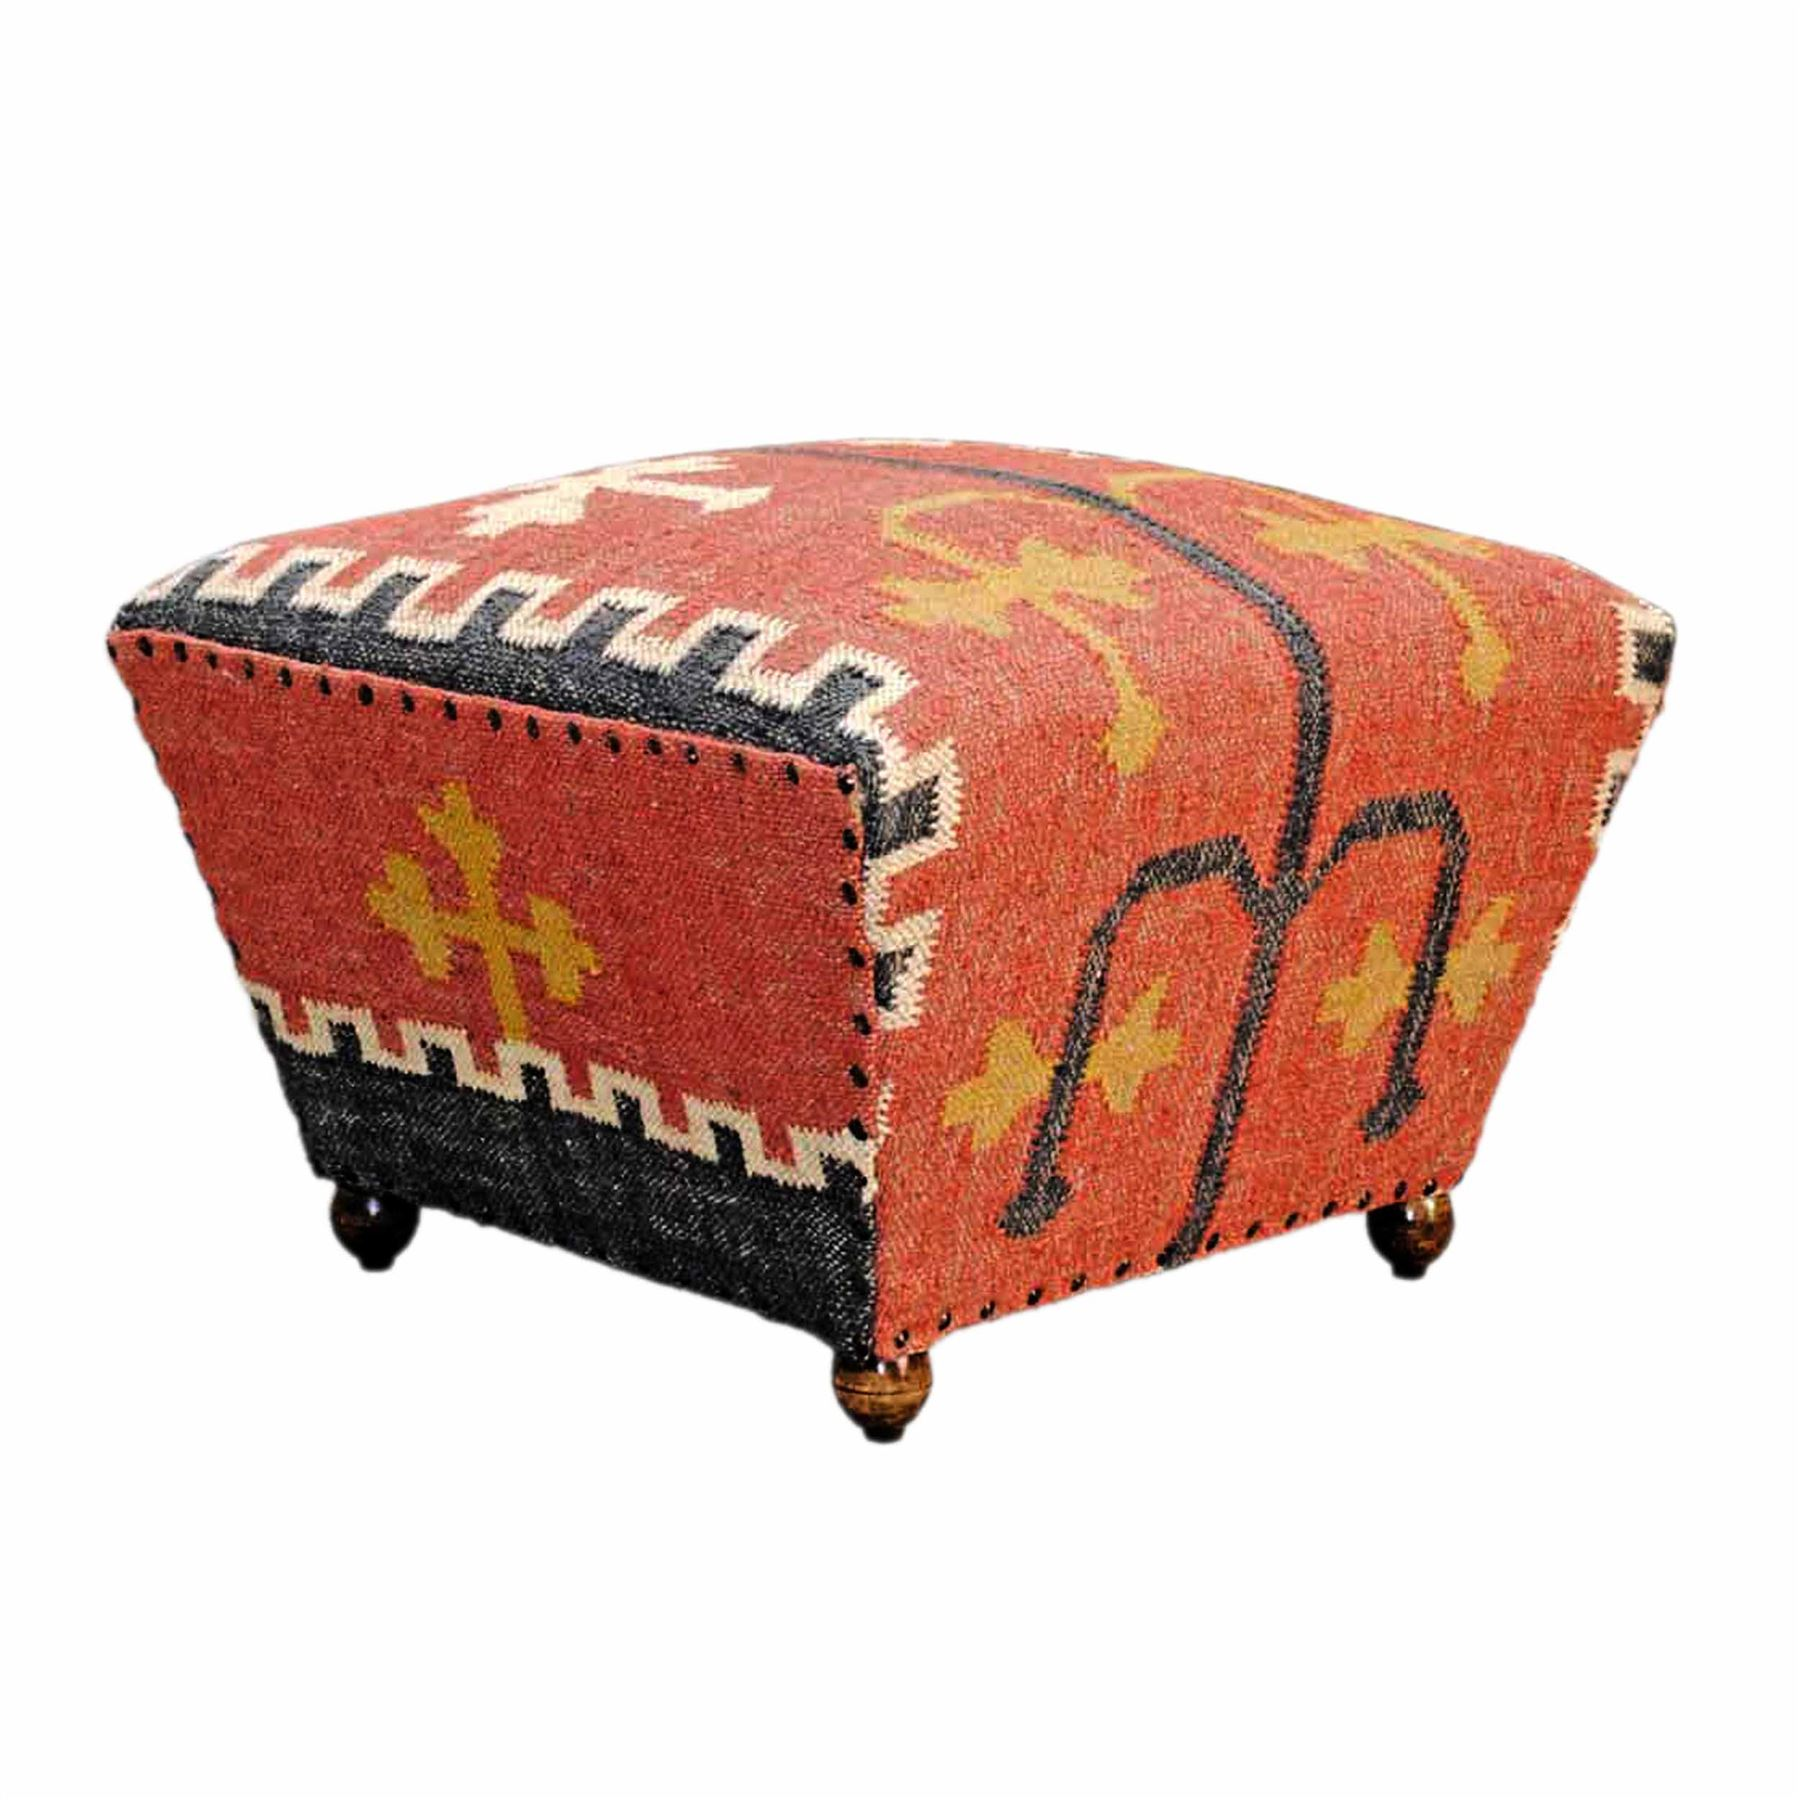 Upholstered Ottoman Tapered Seat Coffee Table Or Footstool